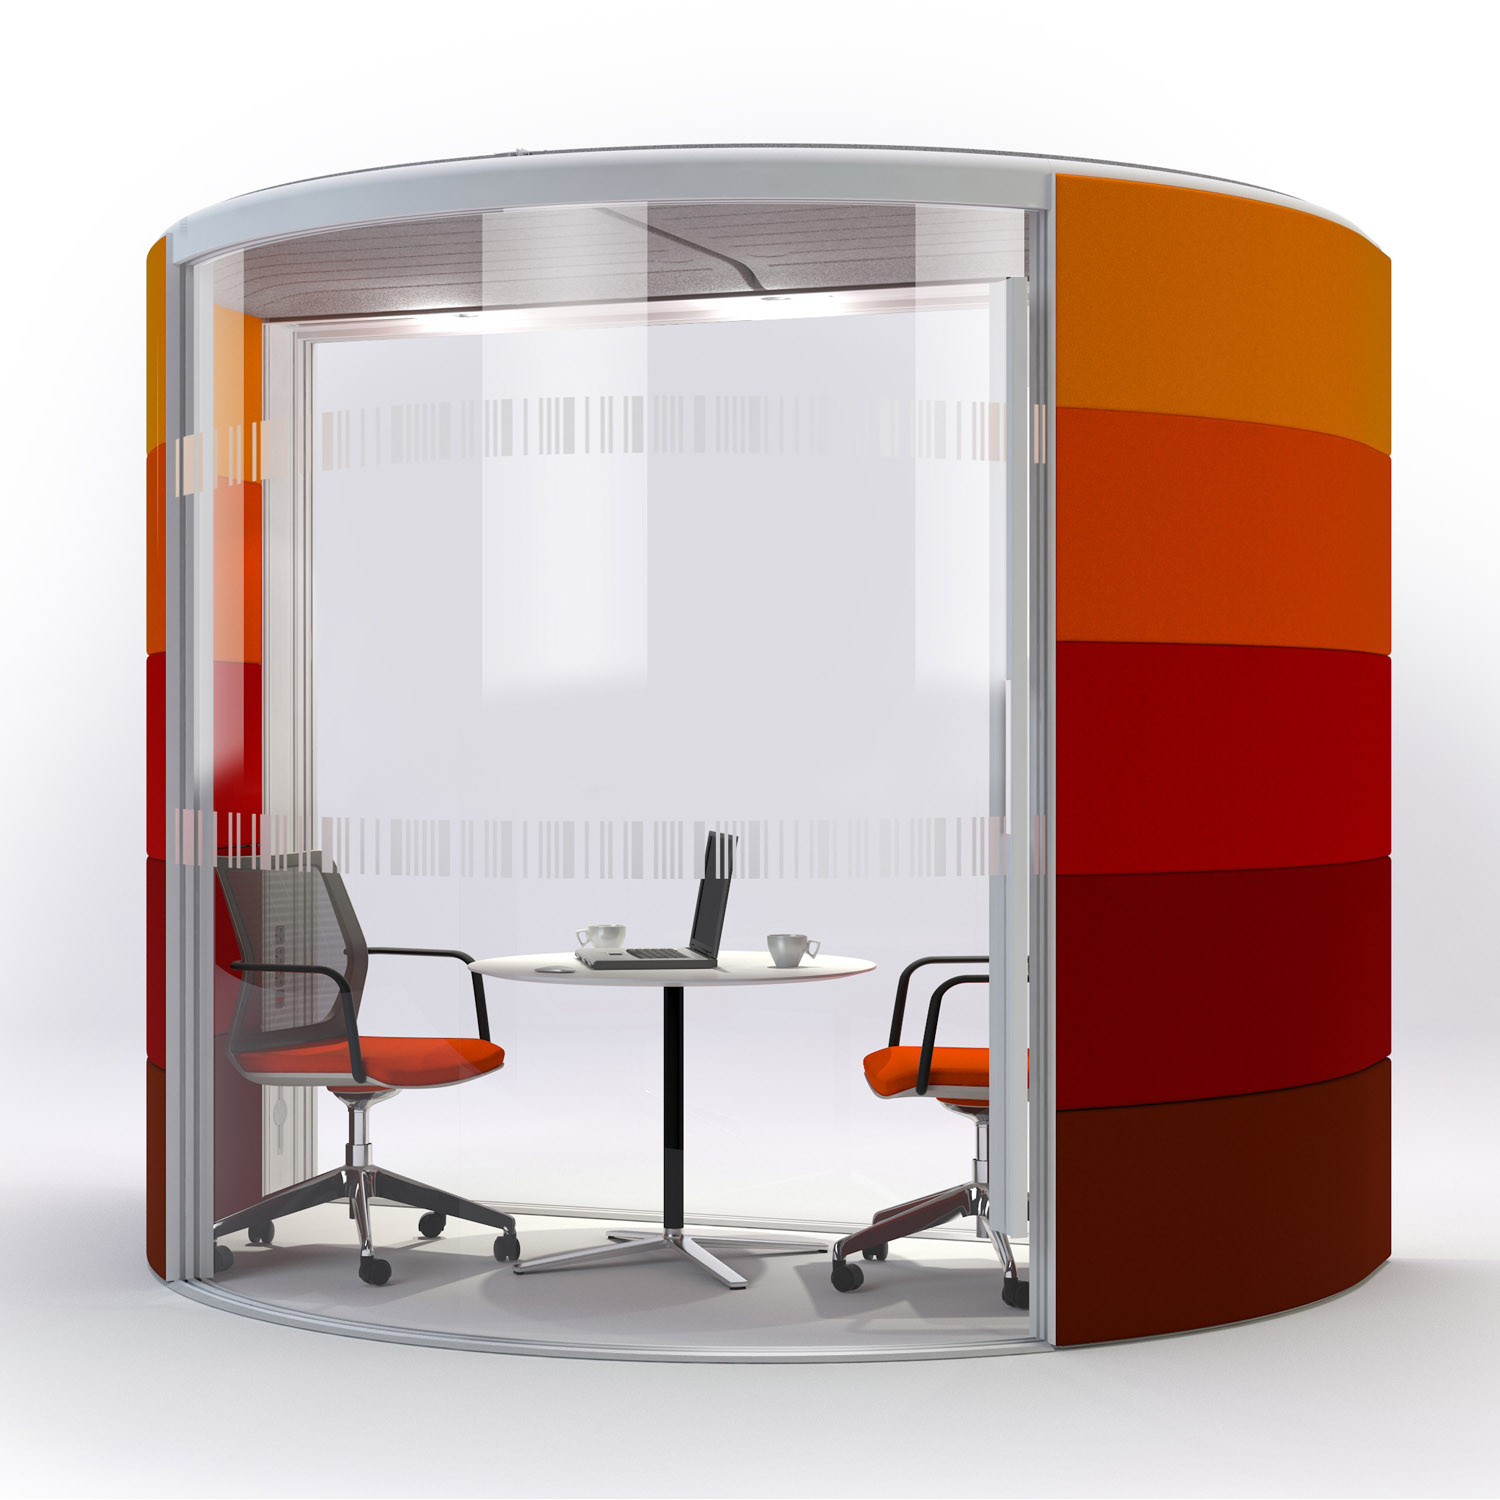 Air Office Meeting Pod from Orangebox